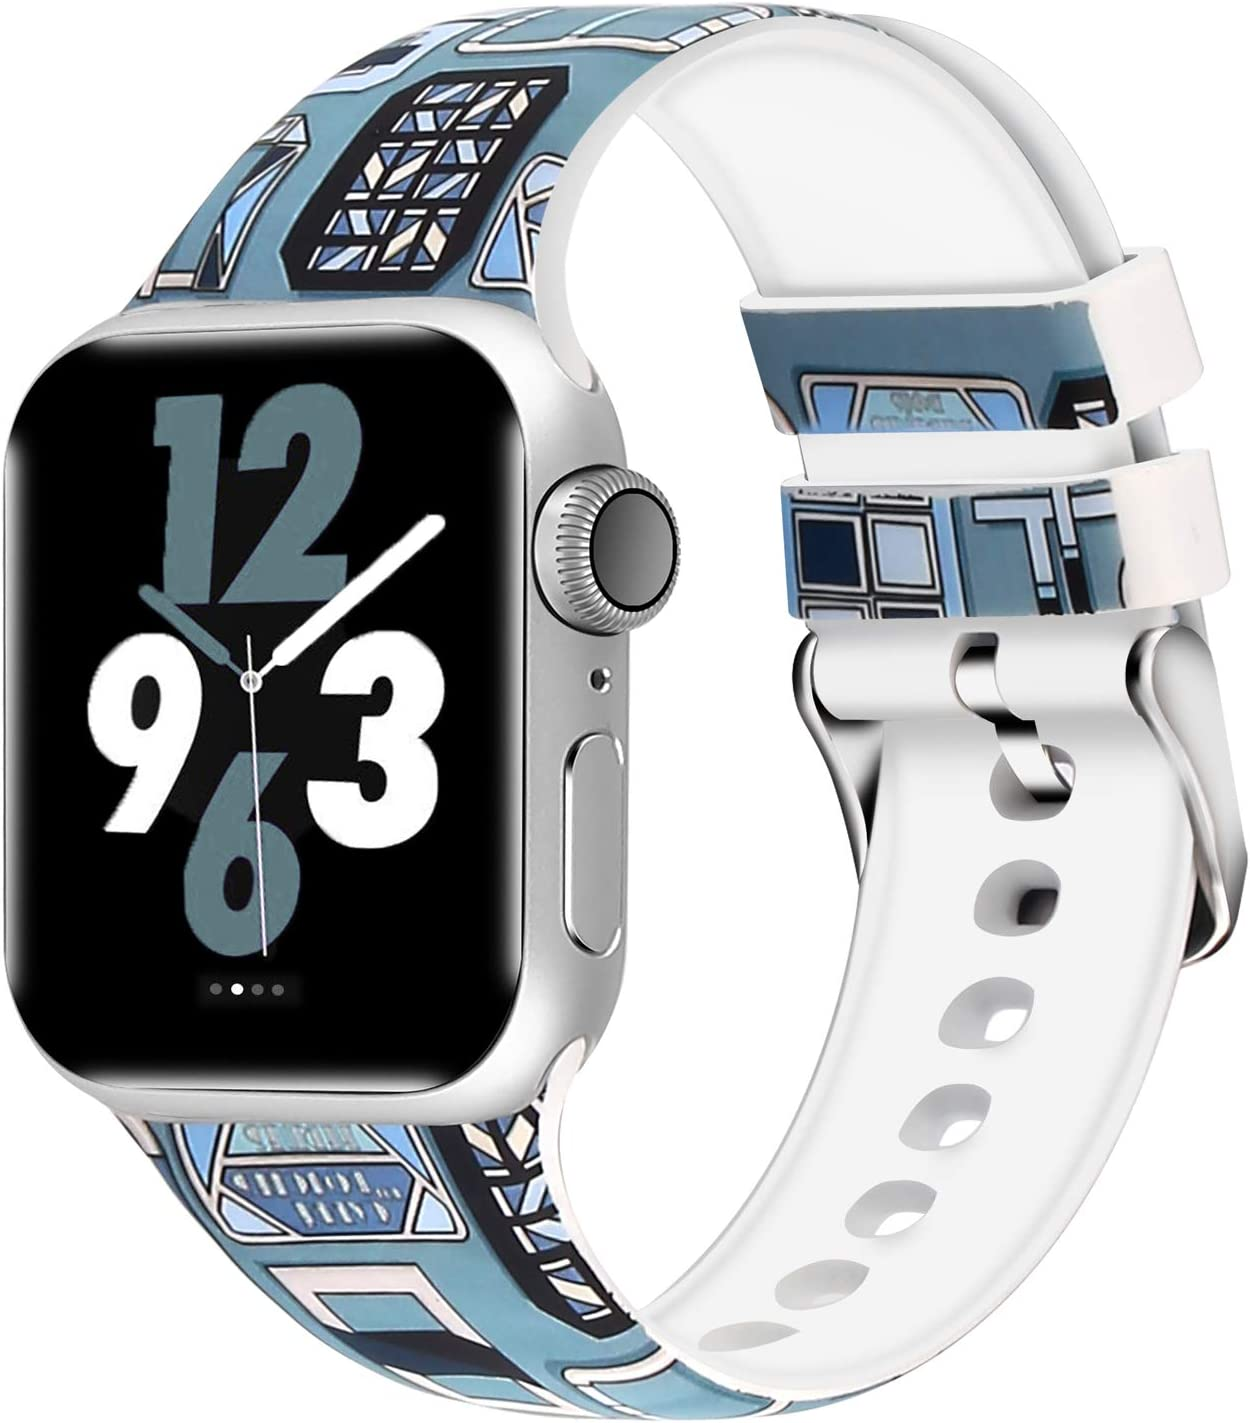 Aomoband Floral Bands Compatible with Apple Watch 38mm 42mm 40mm 44mm, Soft Silicone Pattern Printed Replacements Straps for iWatch Series 4/3/2/1 (Floral-6, 42mm/44mm)